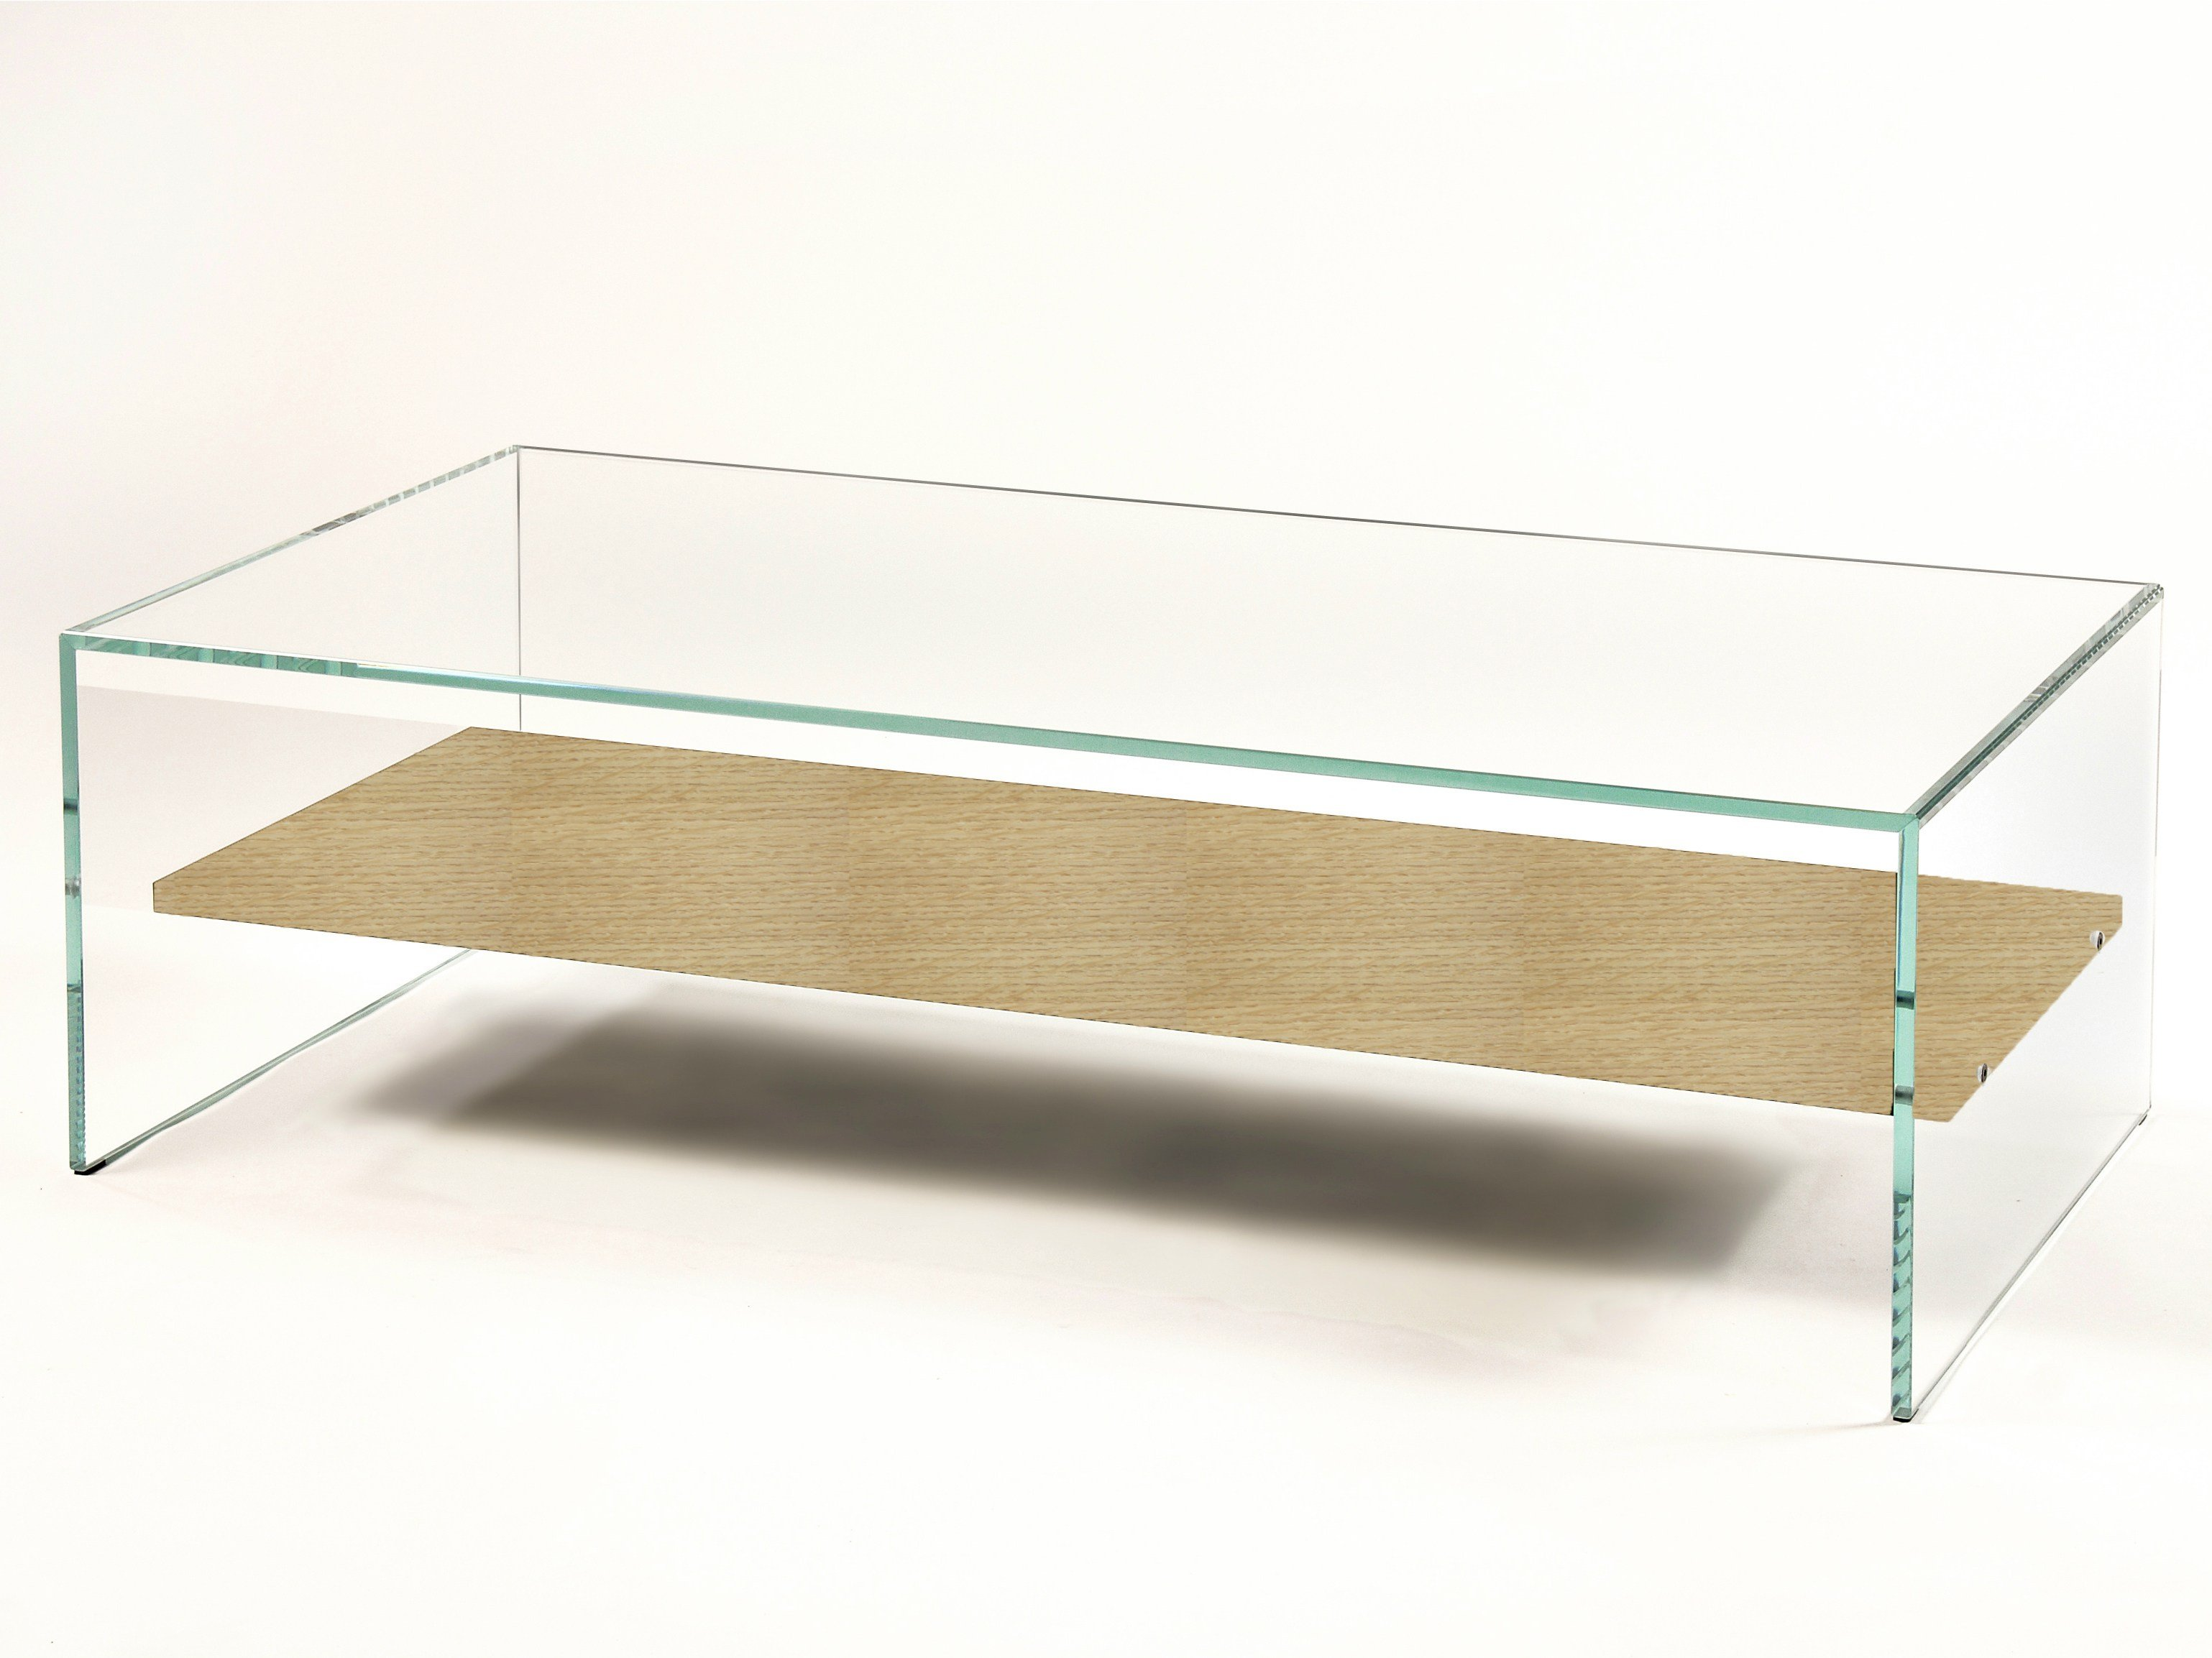 Low Glass Coffee Table Zen 11 Zen Collection By Adentro